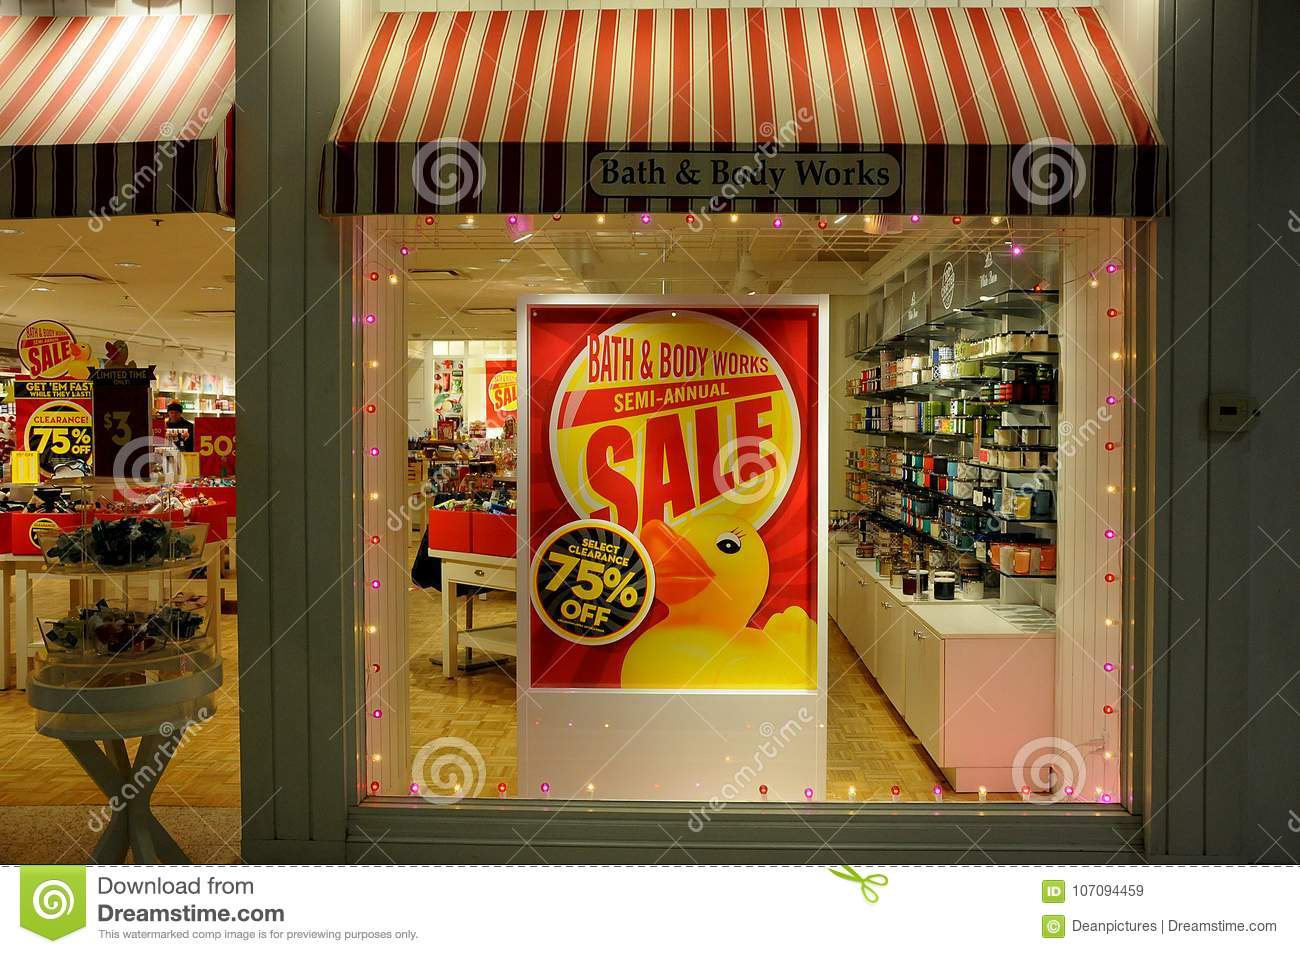 75  sale at bath and body works